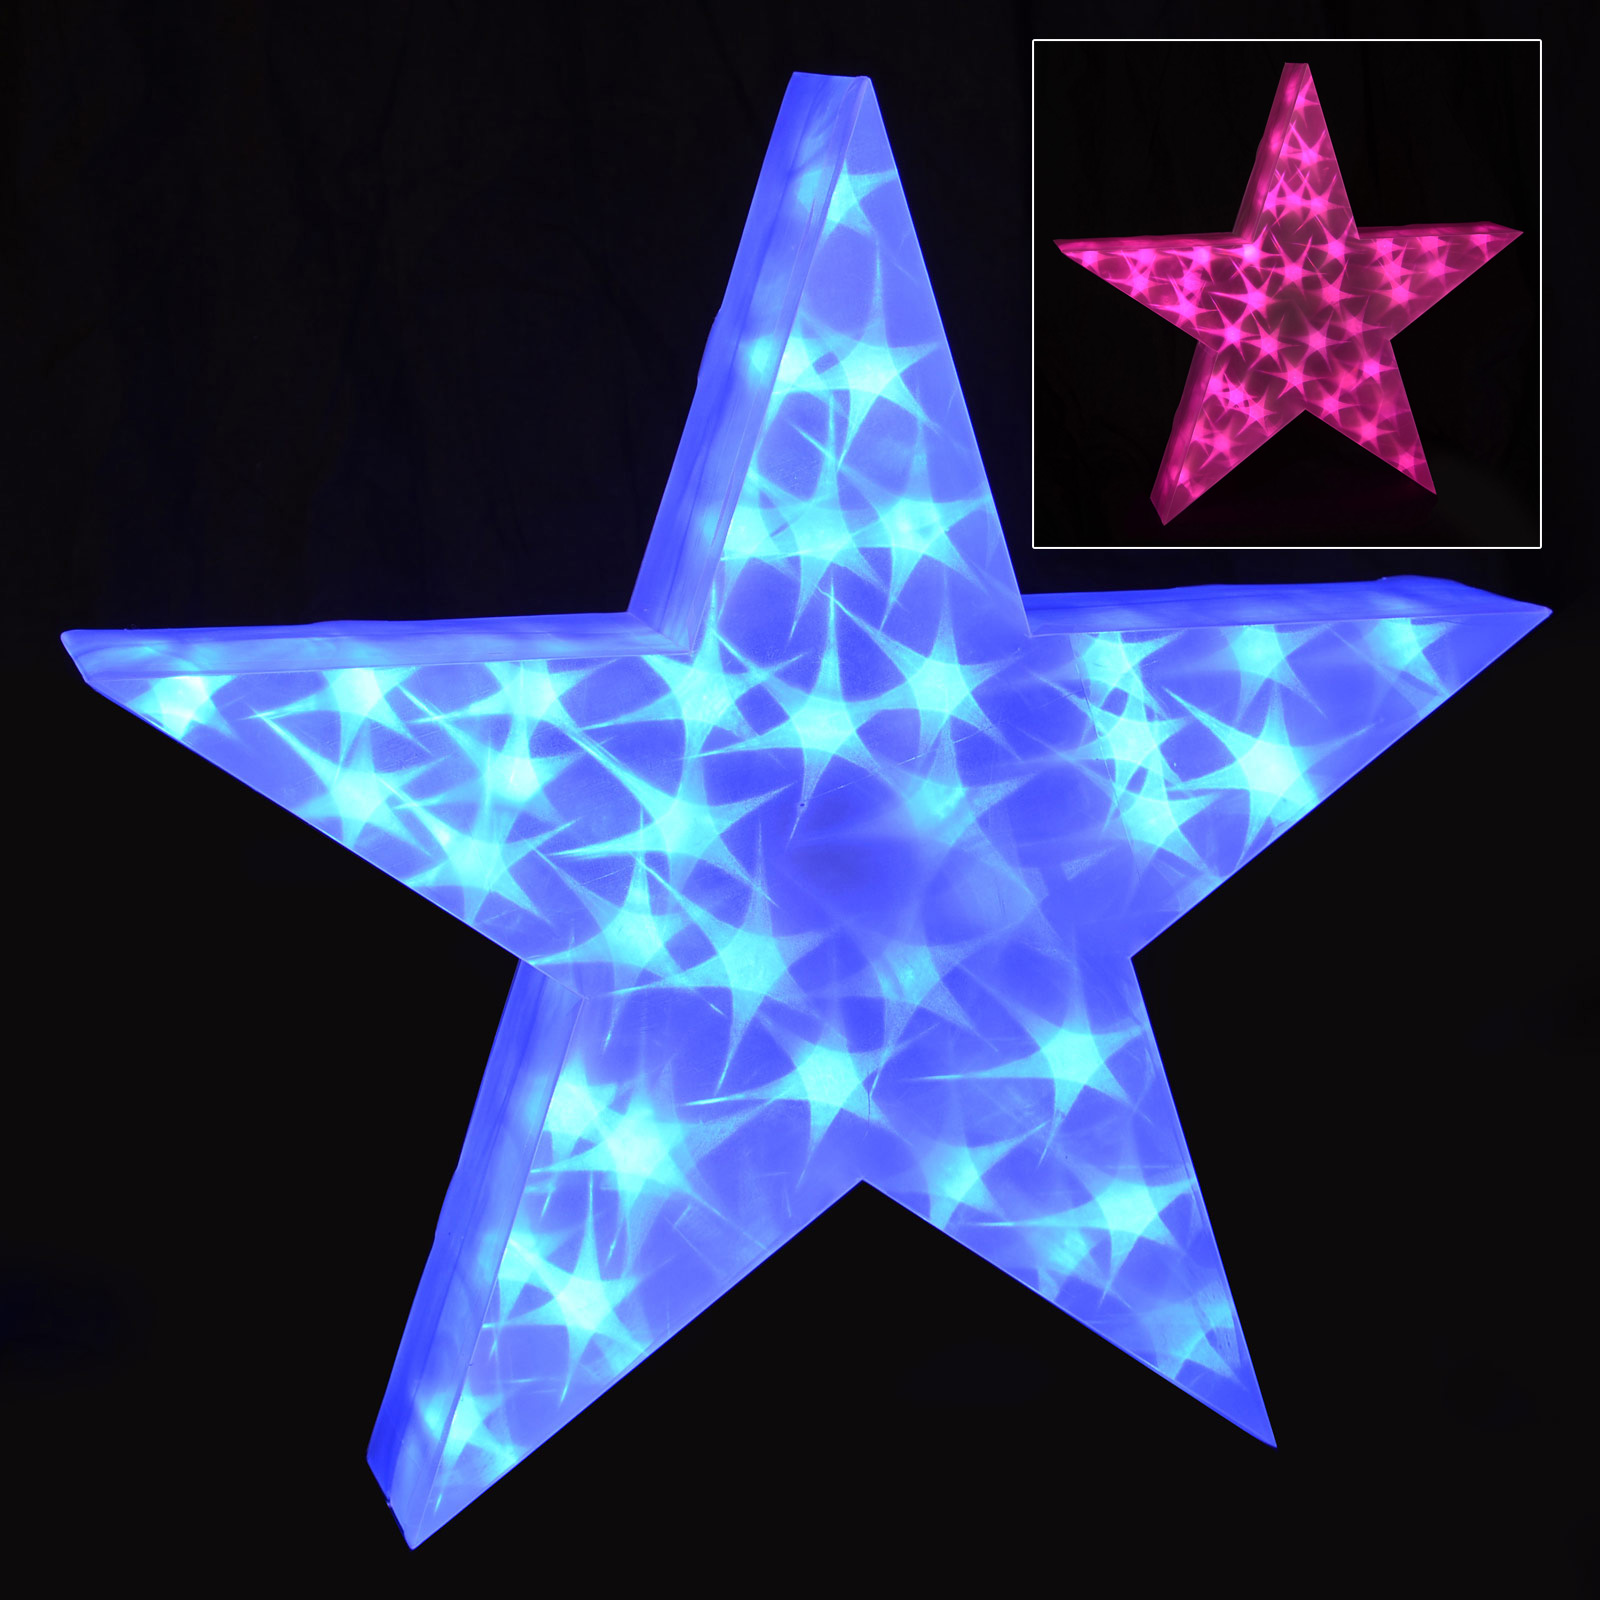 Holographic LED Star Light Up Christmas Decoration 50cm 3D PVC Indoor Blue Pink